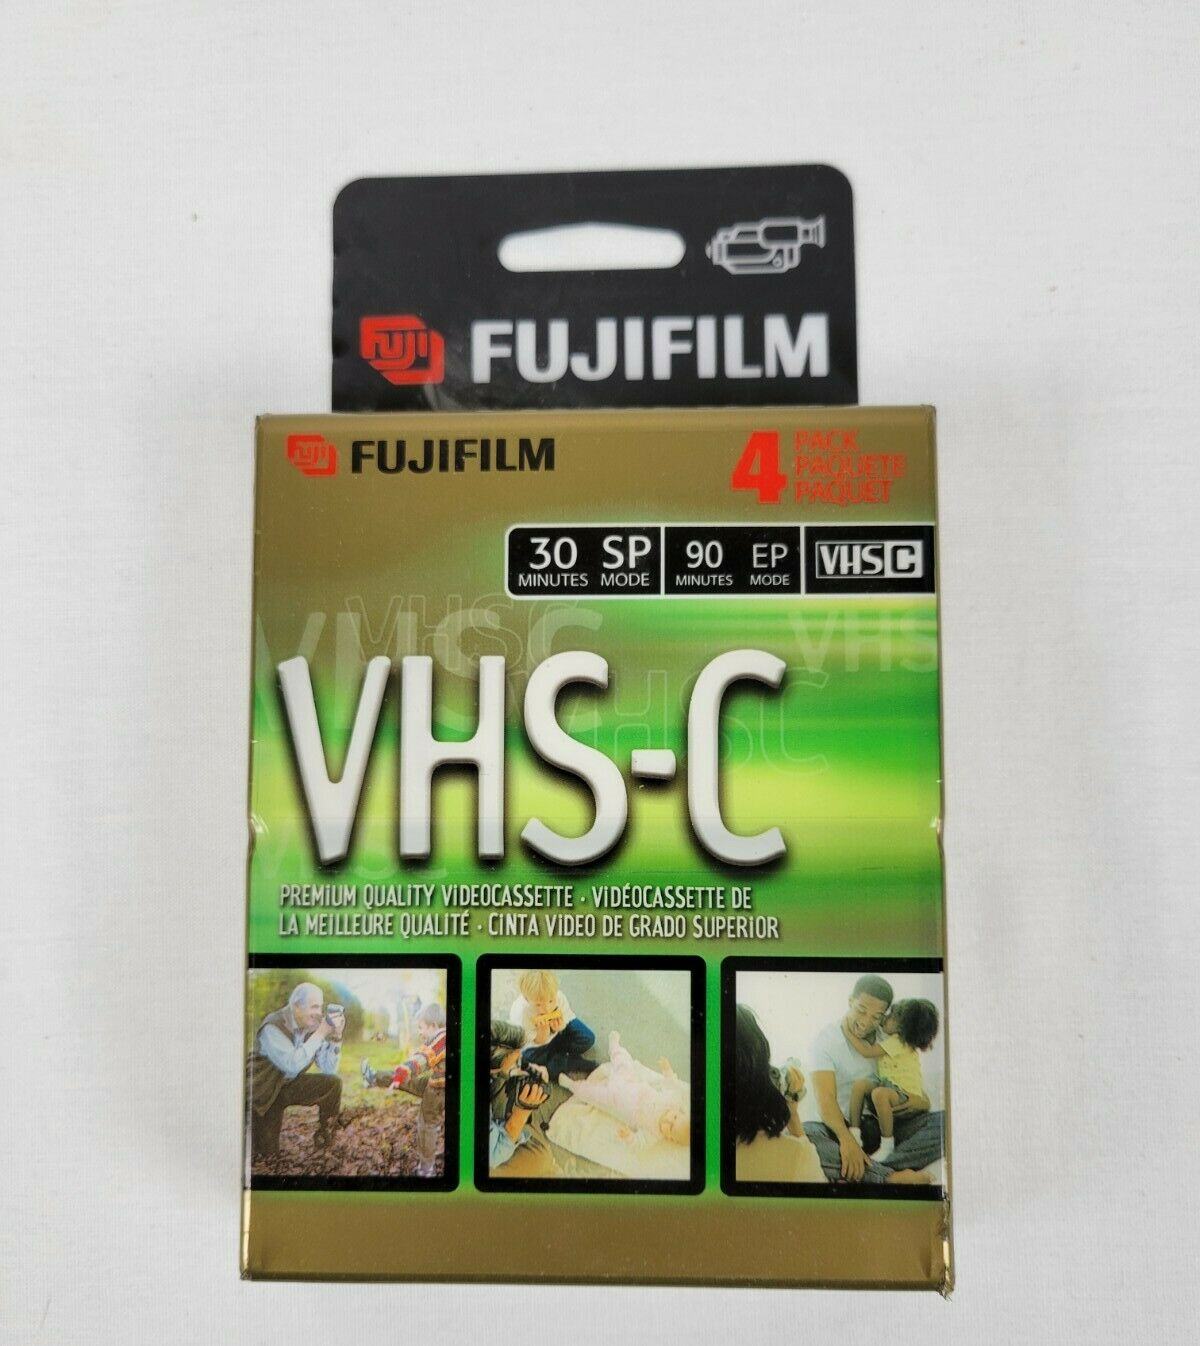 2 Fujifilm VHS-C TC-30 Blank Video Cassette Tapes For Camcorders Read